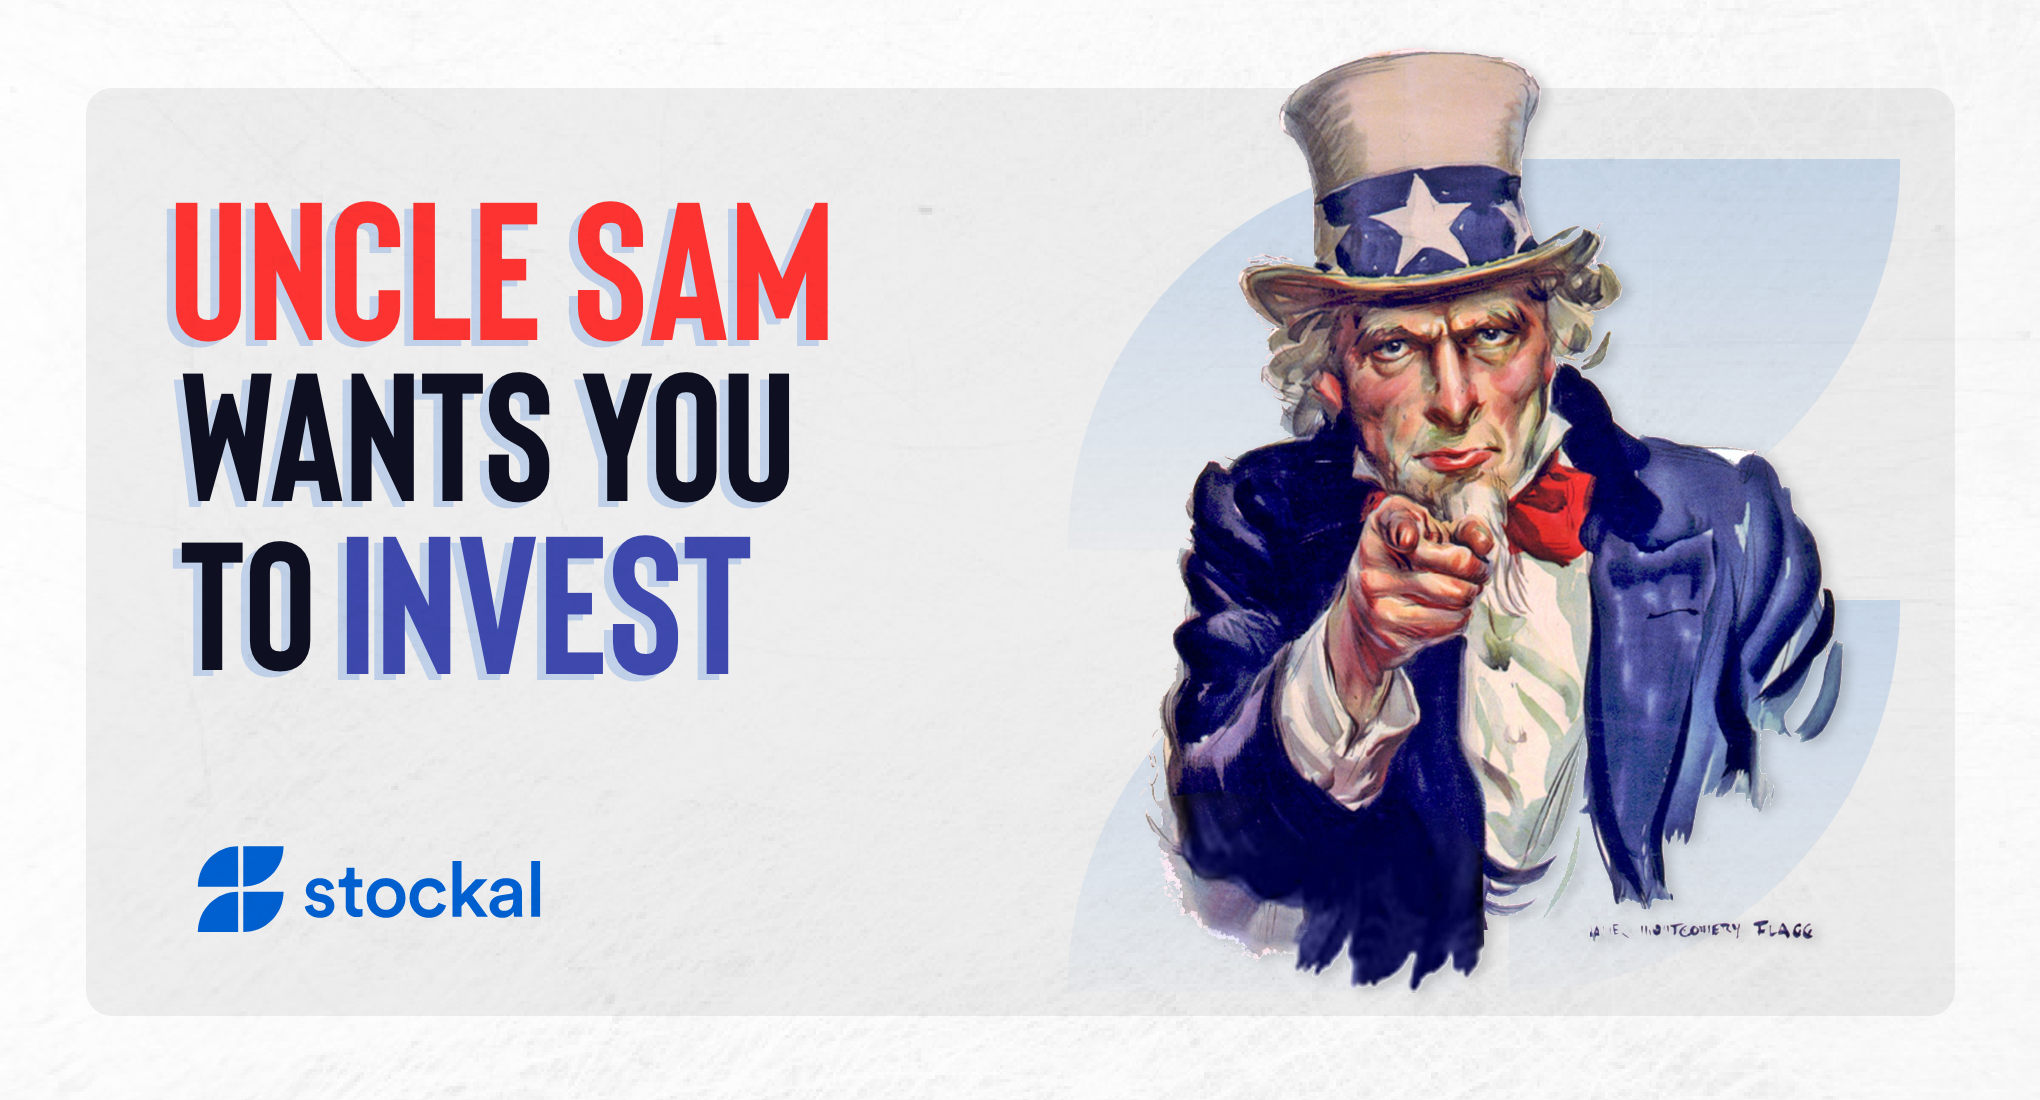 A vintage cover photo of Uncle Sam pointing at you with text that reads 'Uncle Sam Wants You To Invest'—Stockal